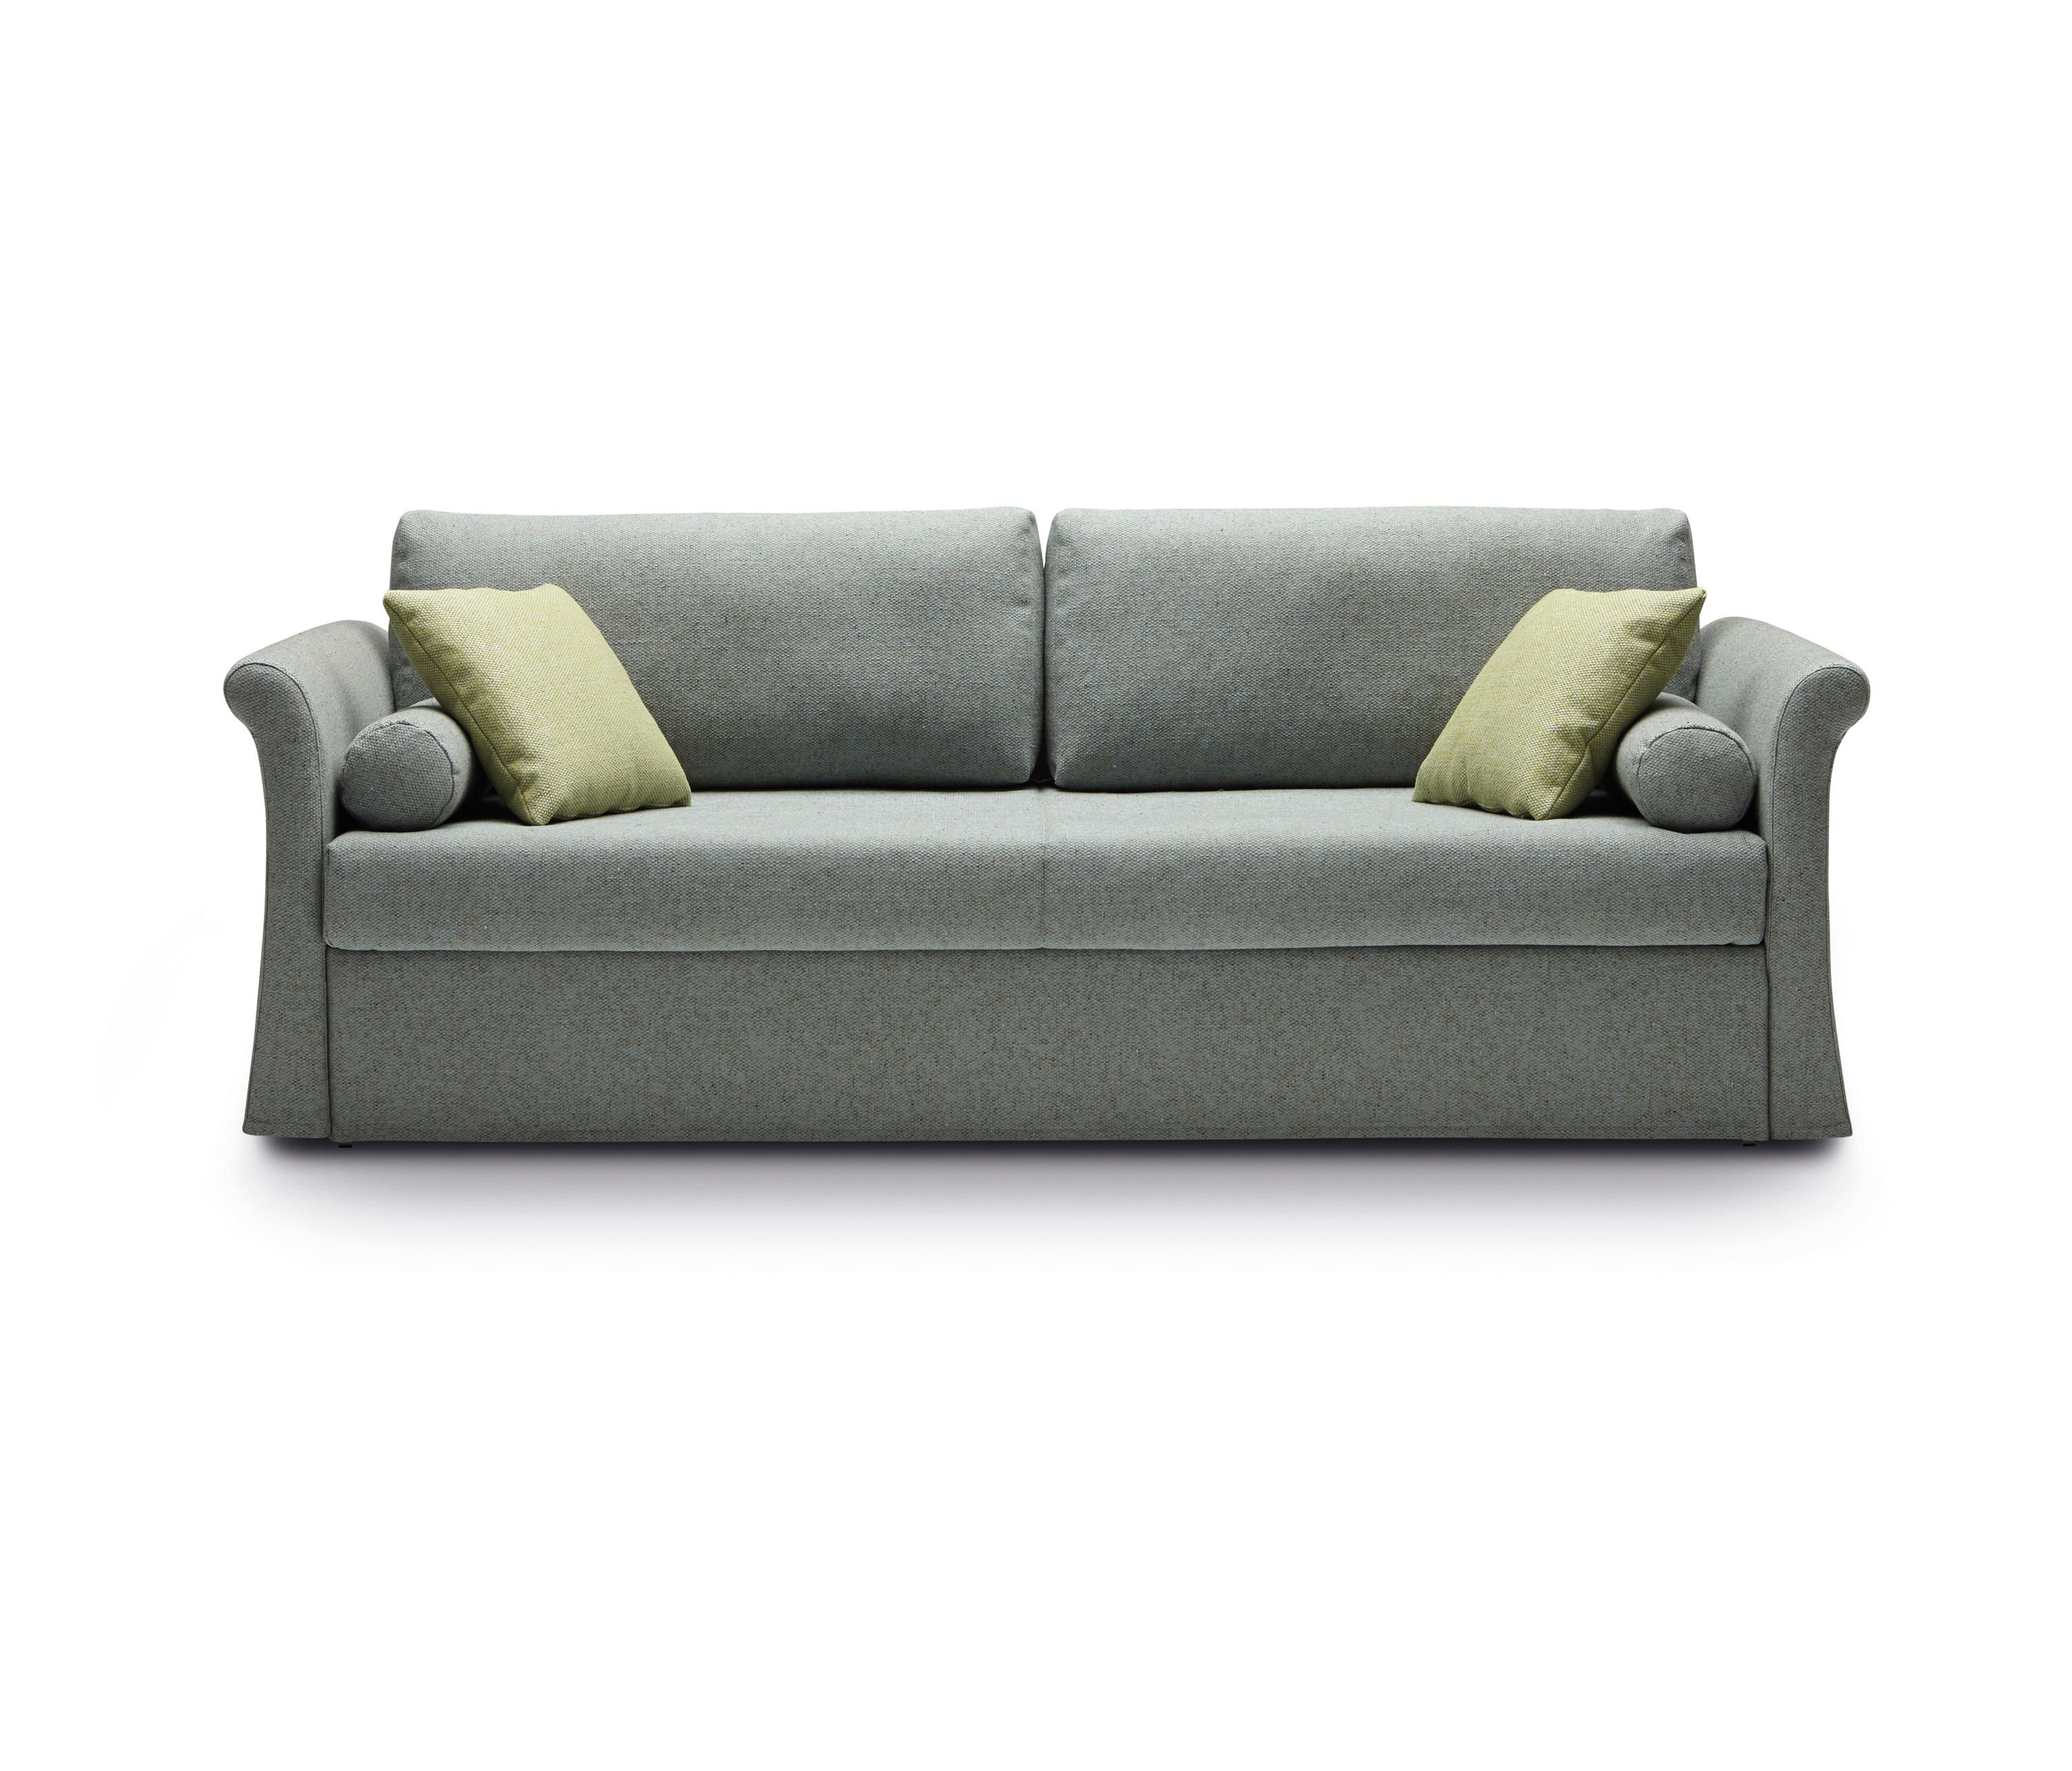 JACK CLASSIC - Designer Sofas from Milano Bedding ✓ all ...